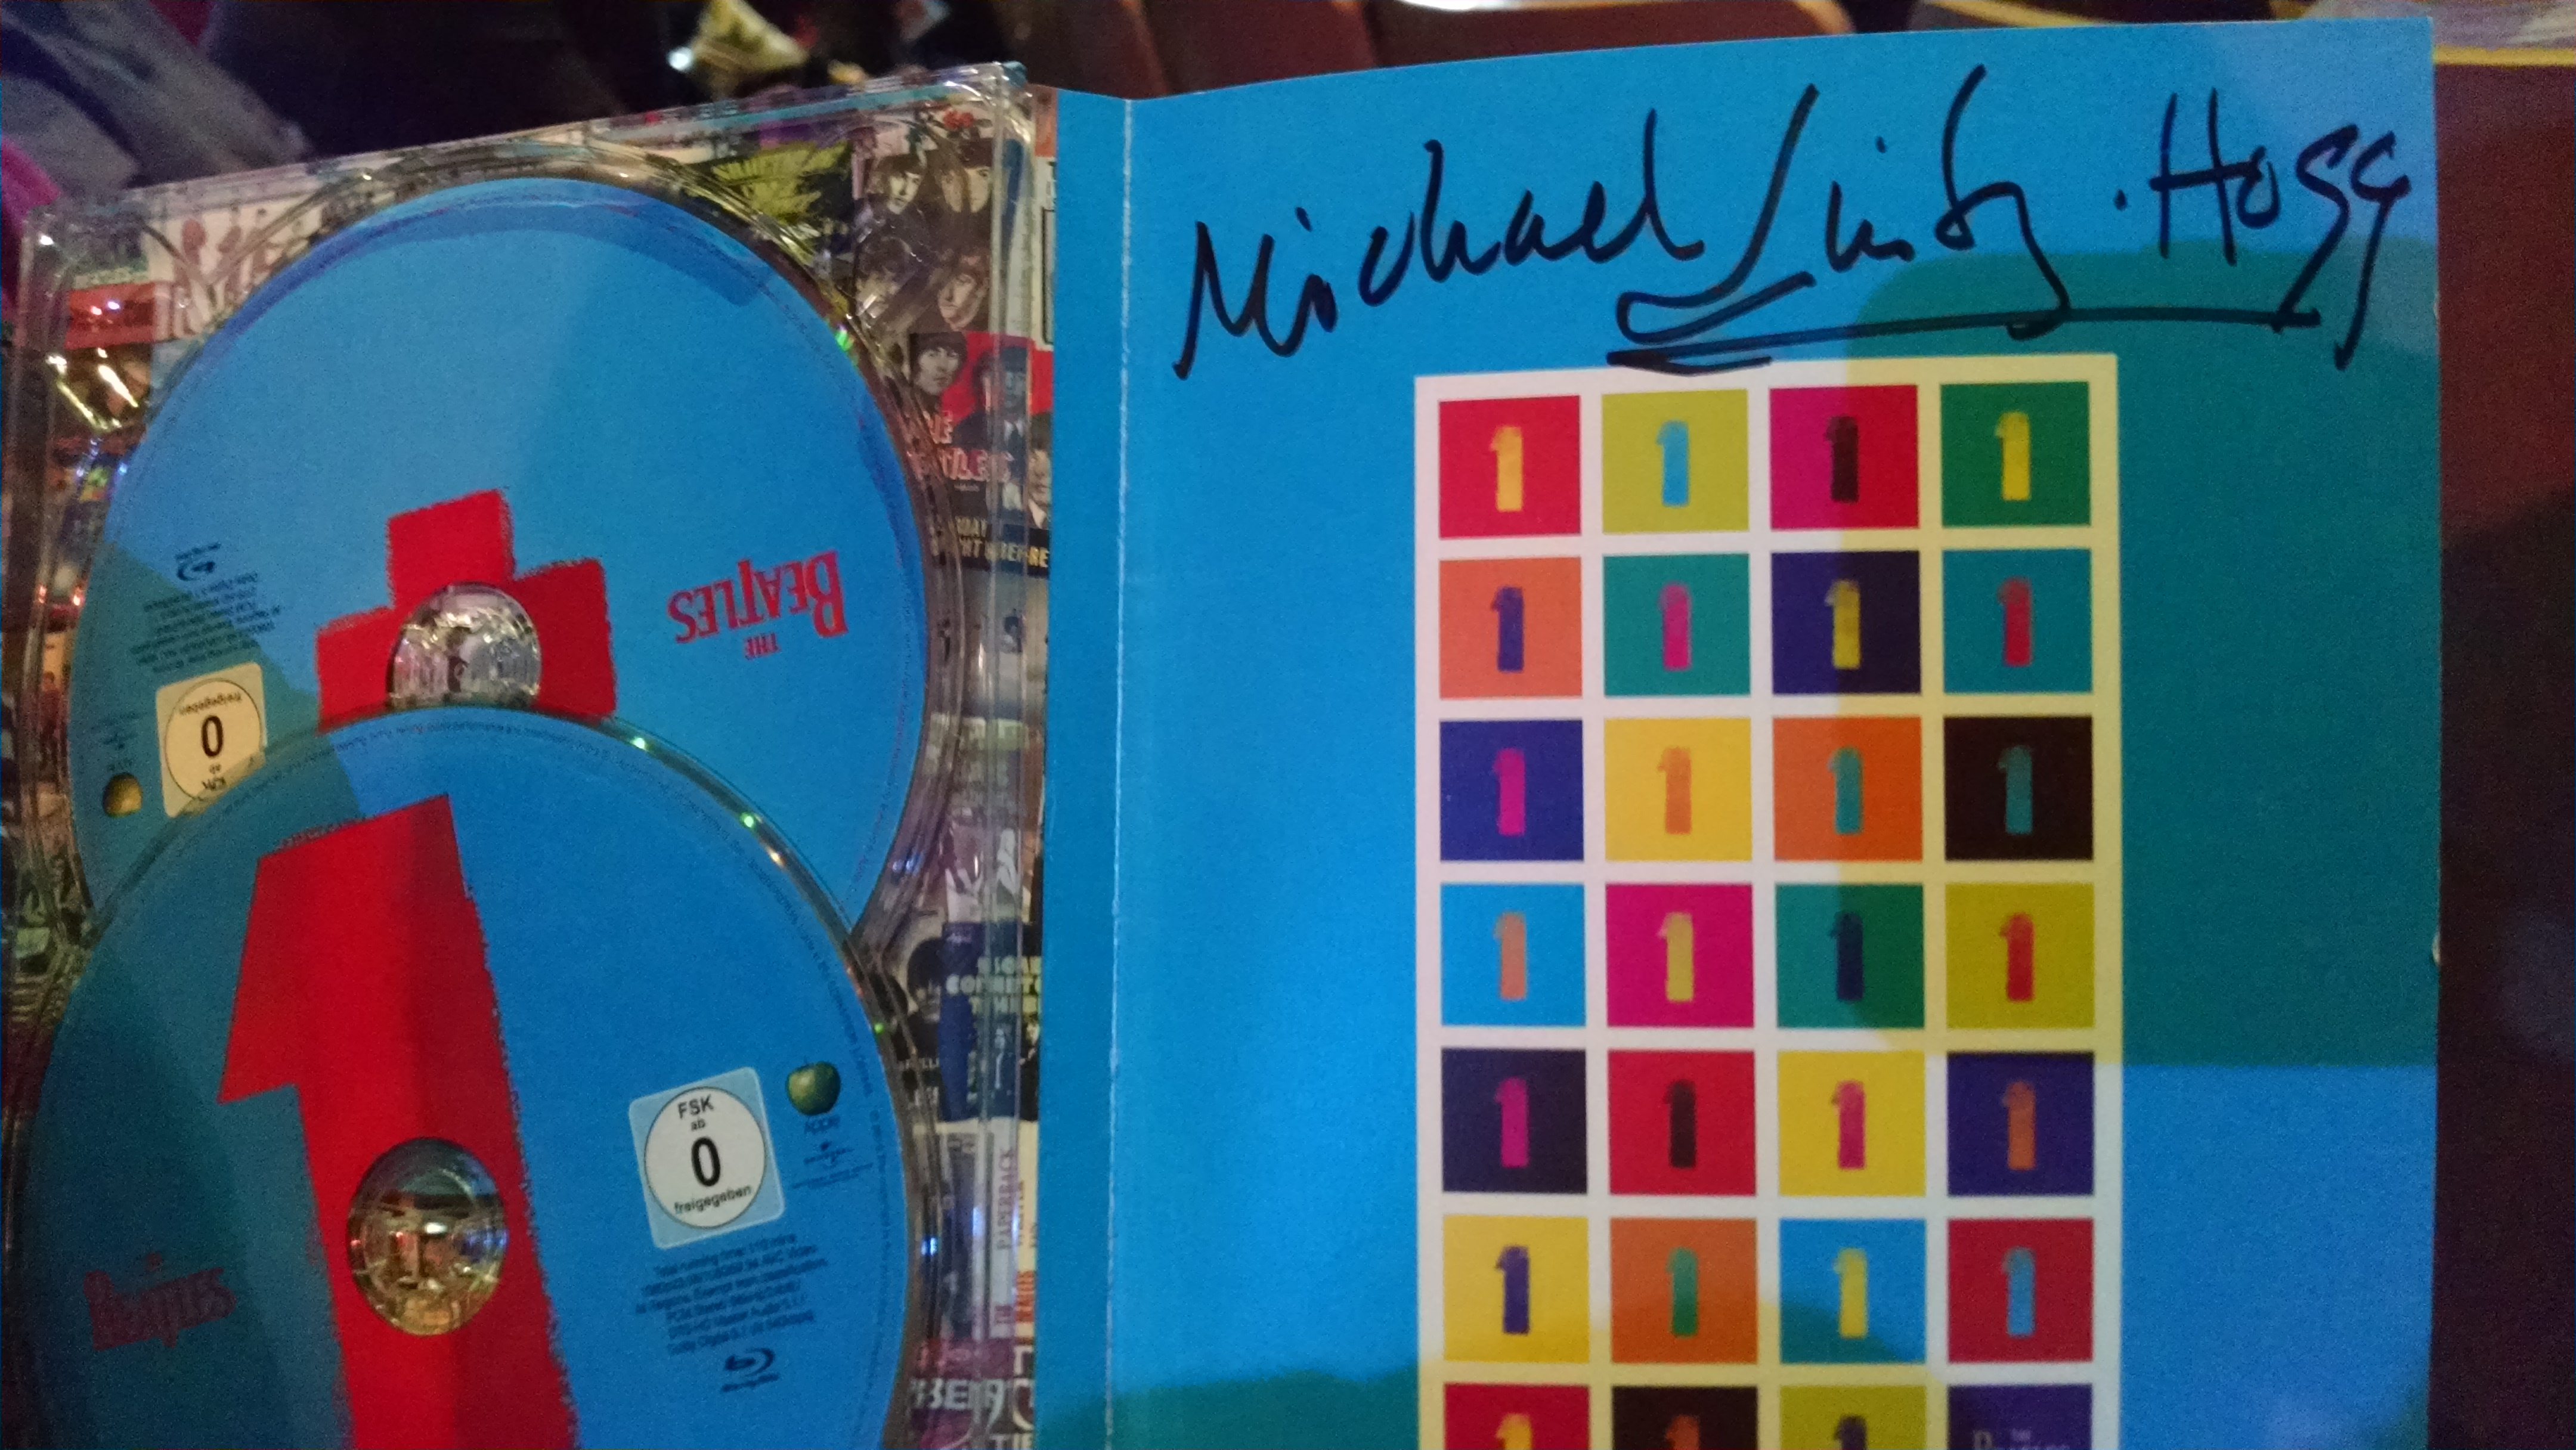 Beatles 1+ signed by Michael Lindsay Hogg